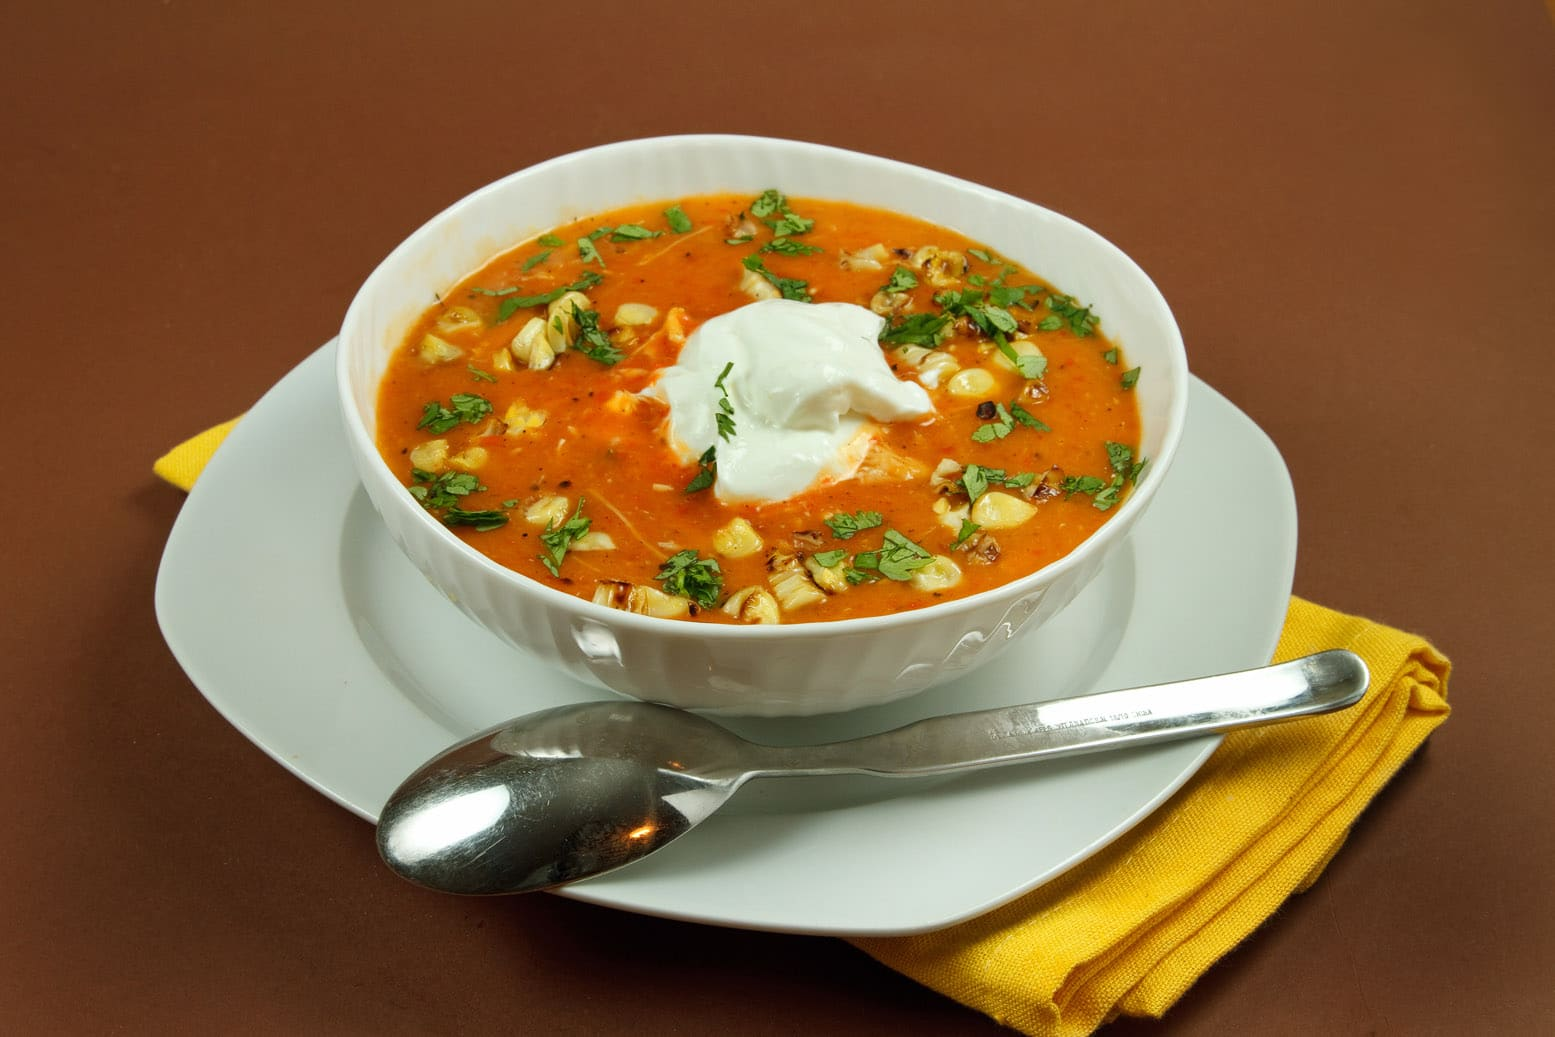 Restaurants started featuring soups and became well known for their ...